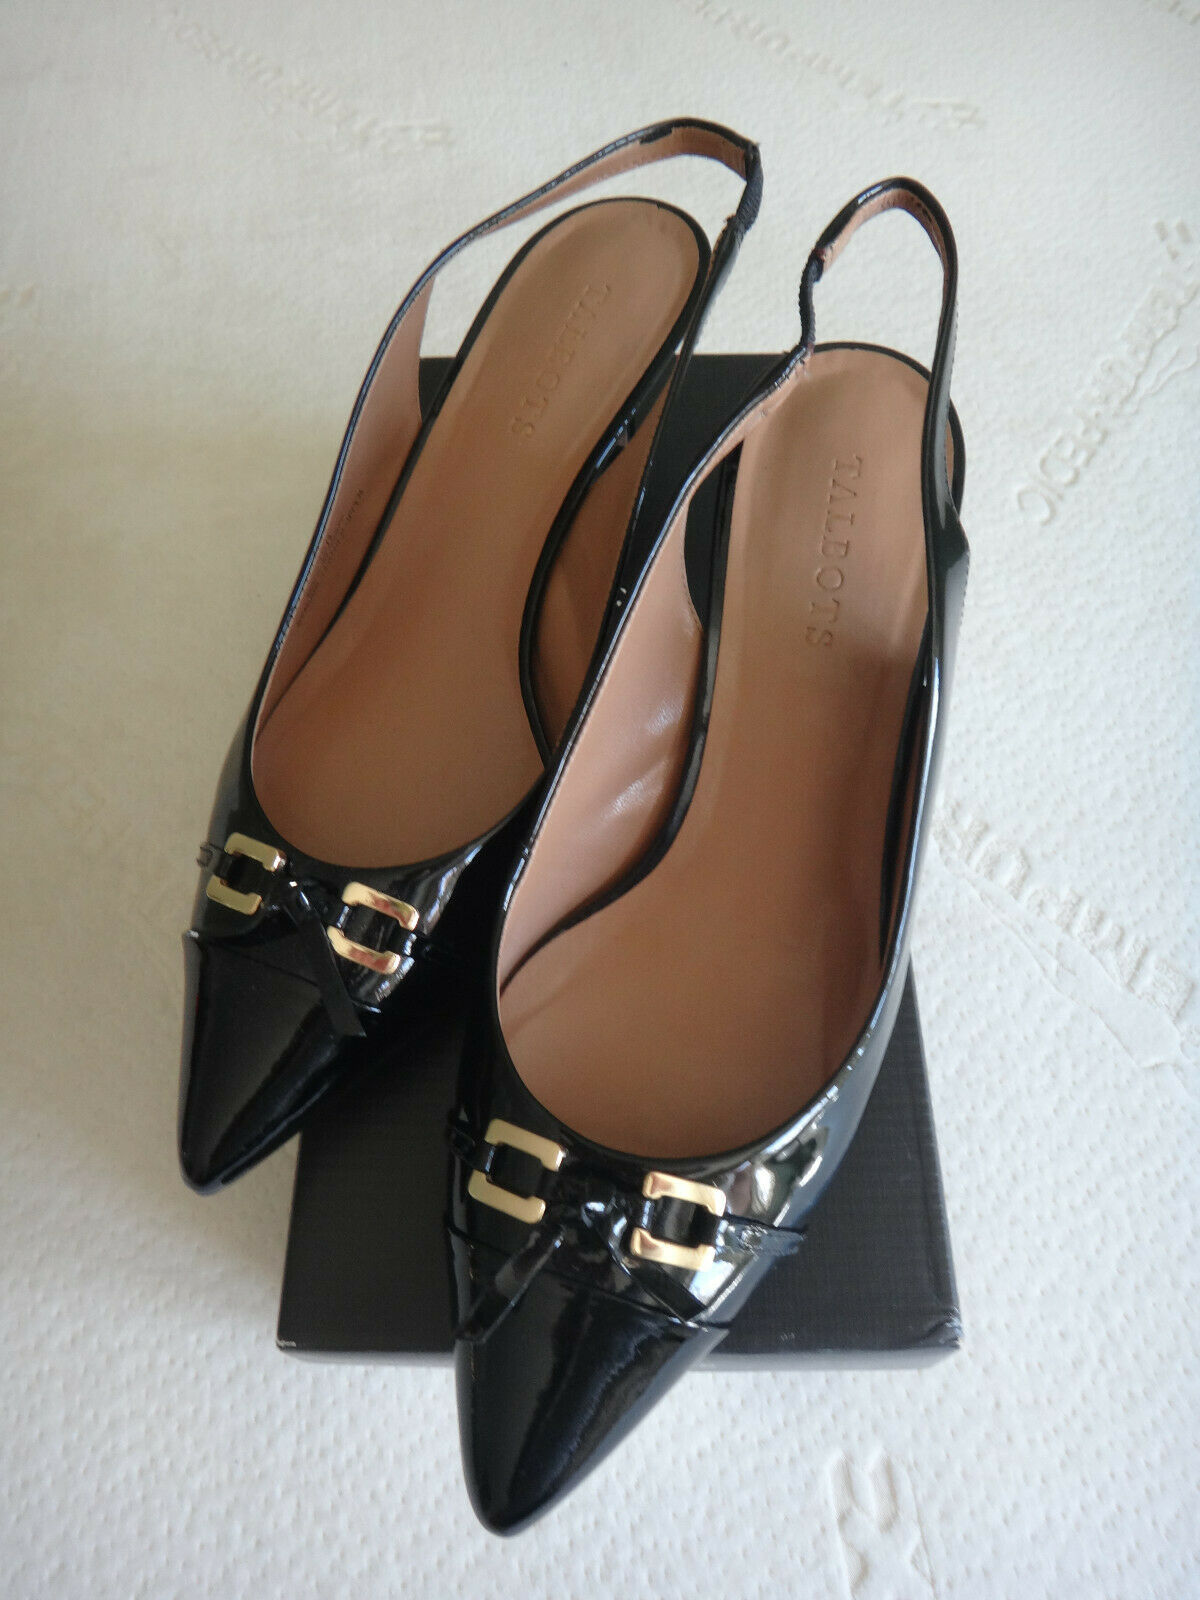 Talbots Dayla nero Patent Leather Slingback Pumps scarpe - Dimensione 10M - in Box